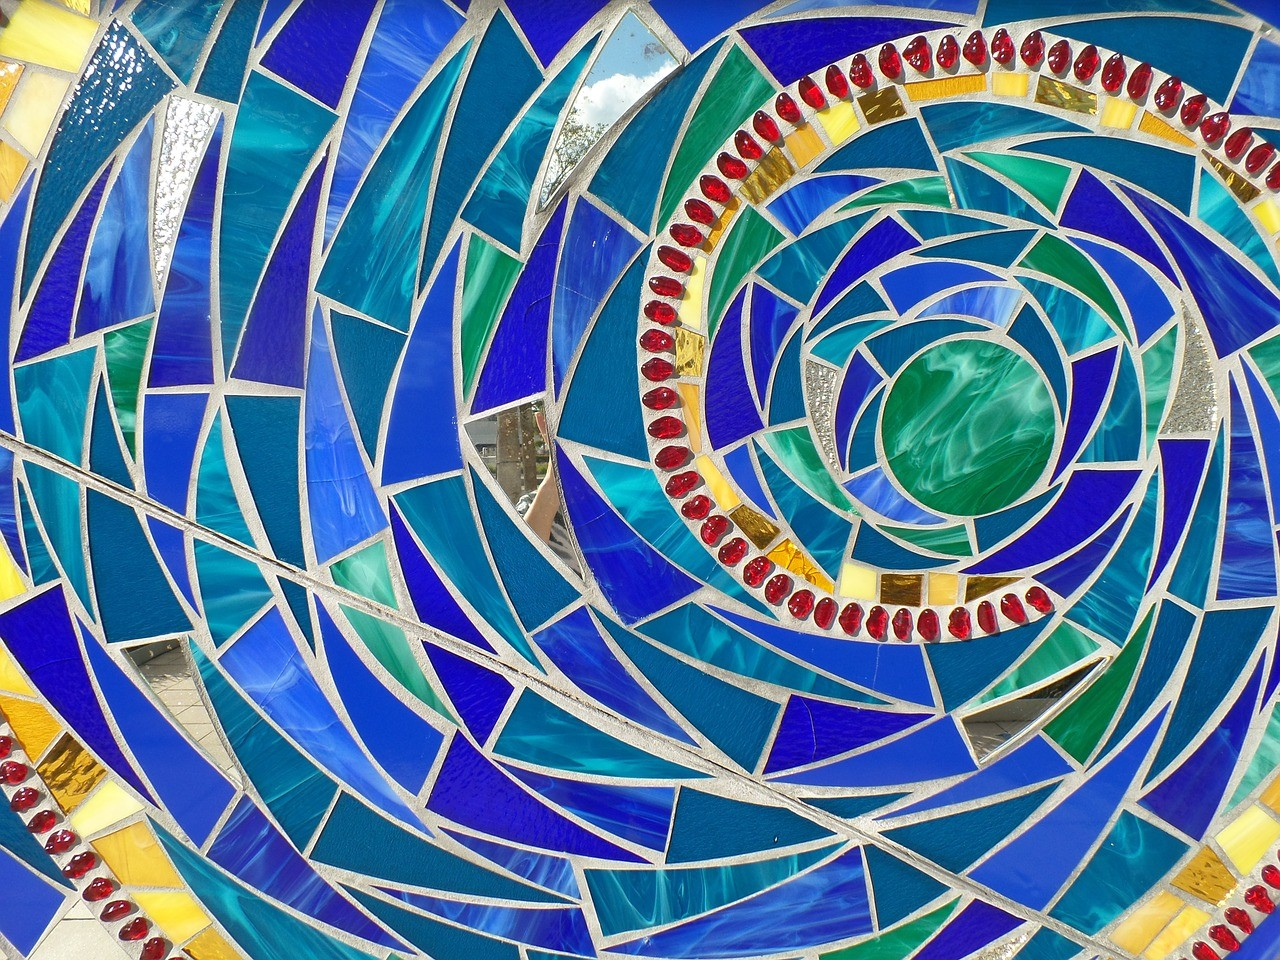 Different Types of Tiles You Can Use for Mosaics - Mozaico Blog